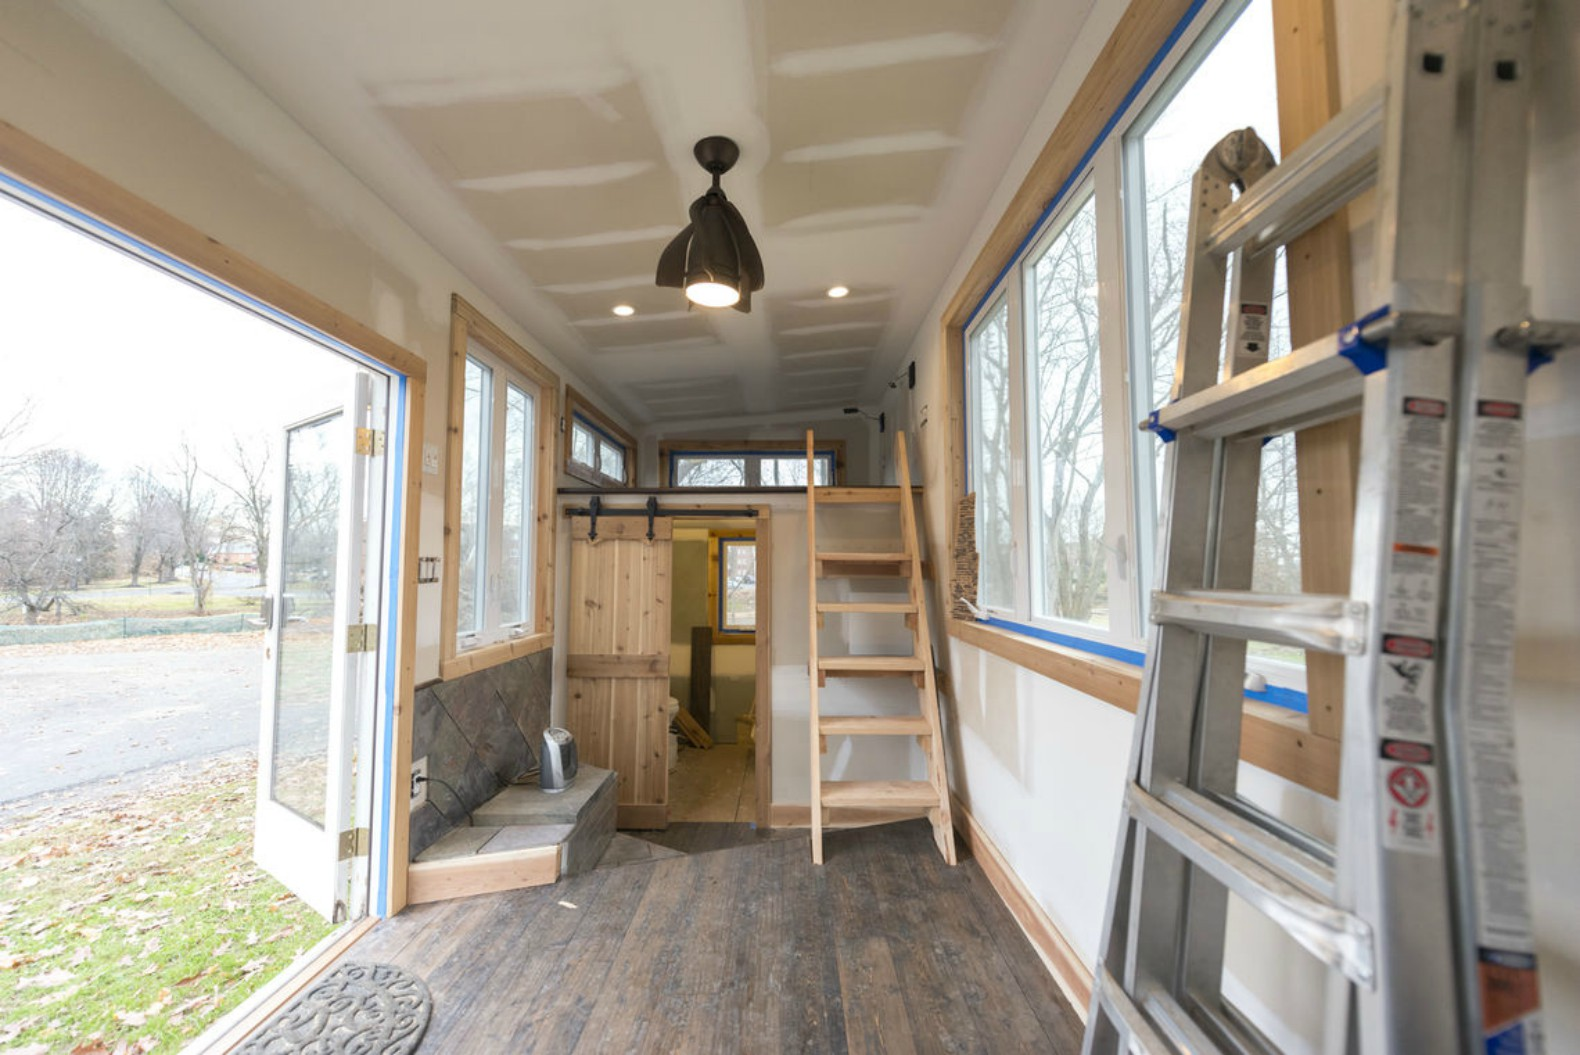 DIY mobile tiny cabin is made out of old skateboards and a